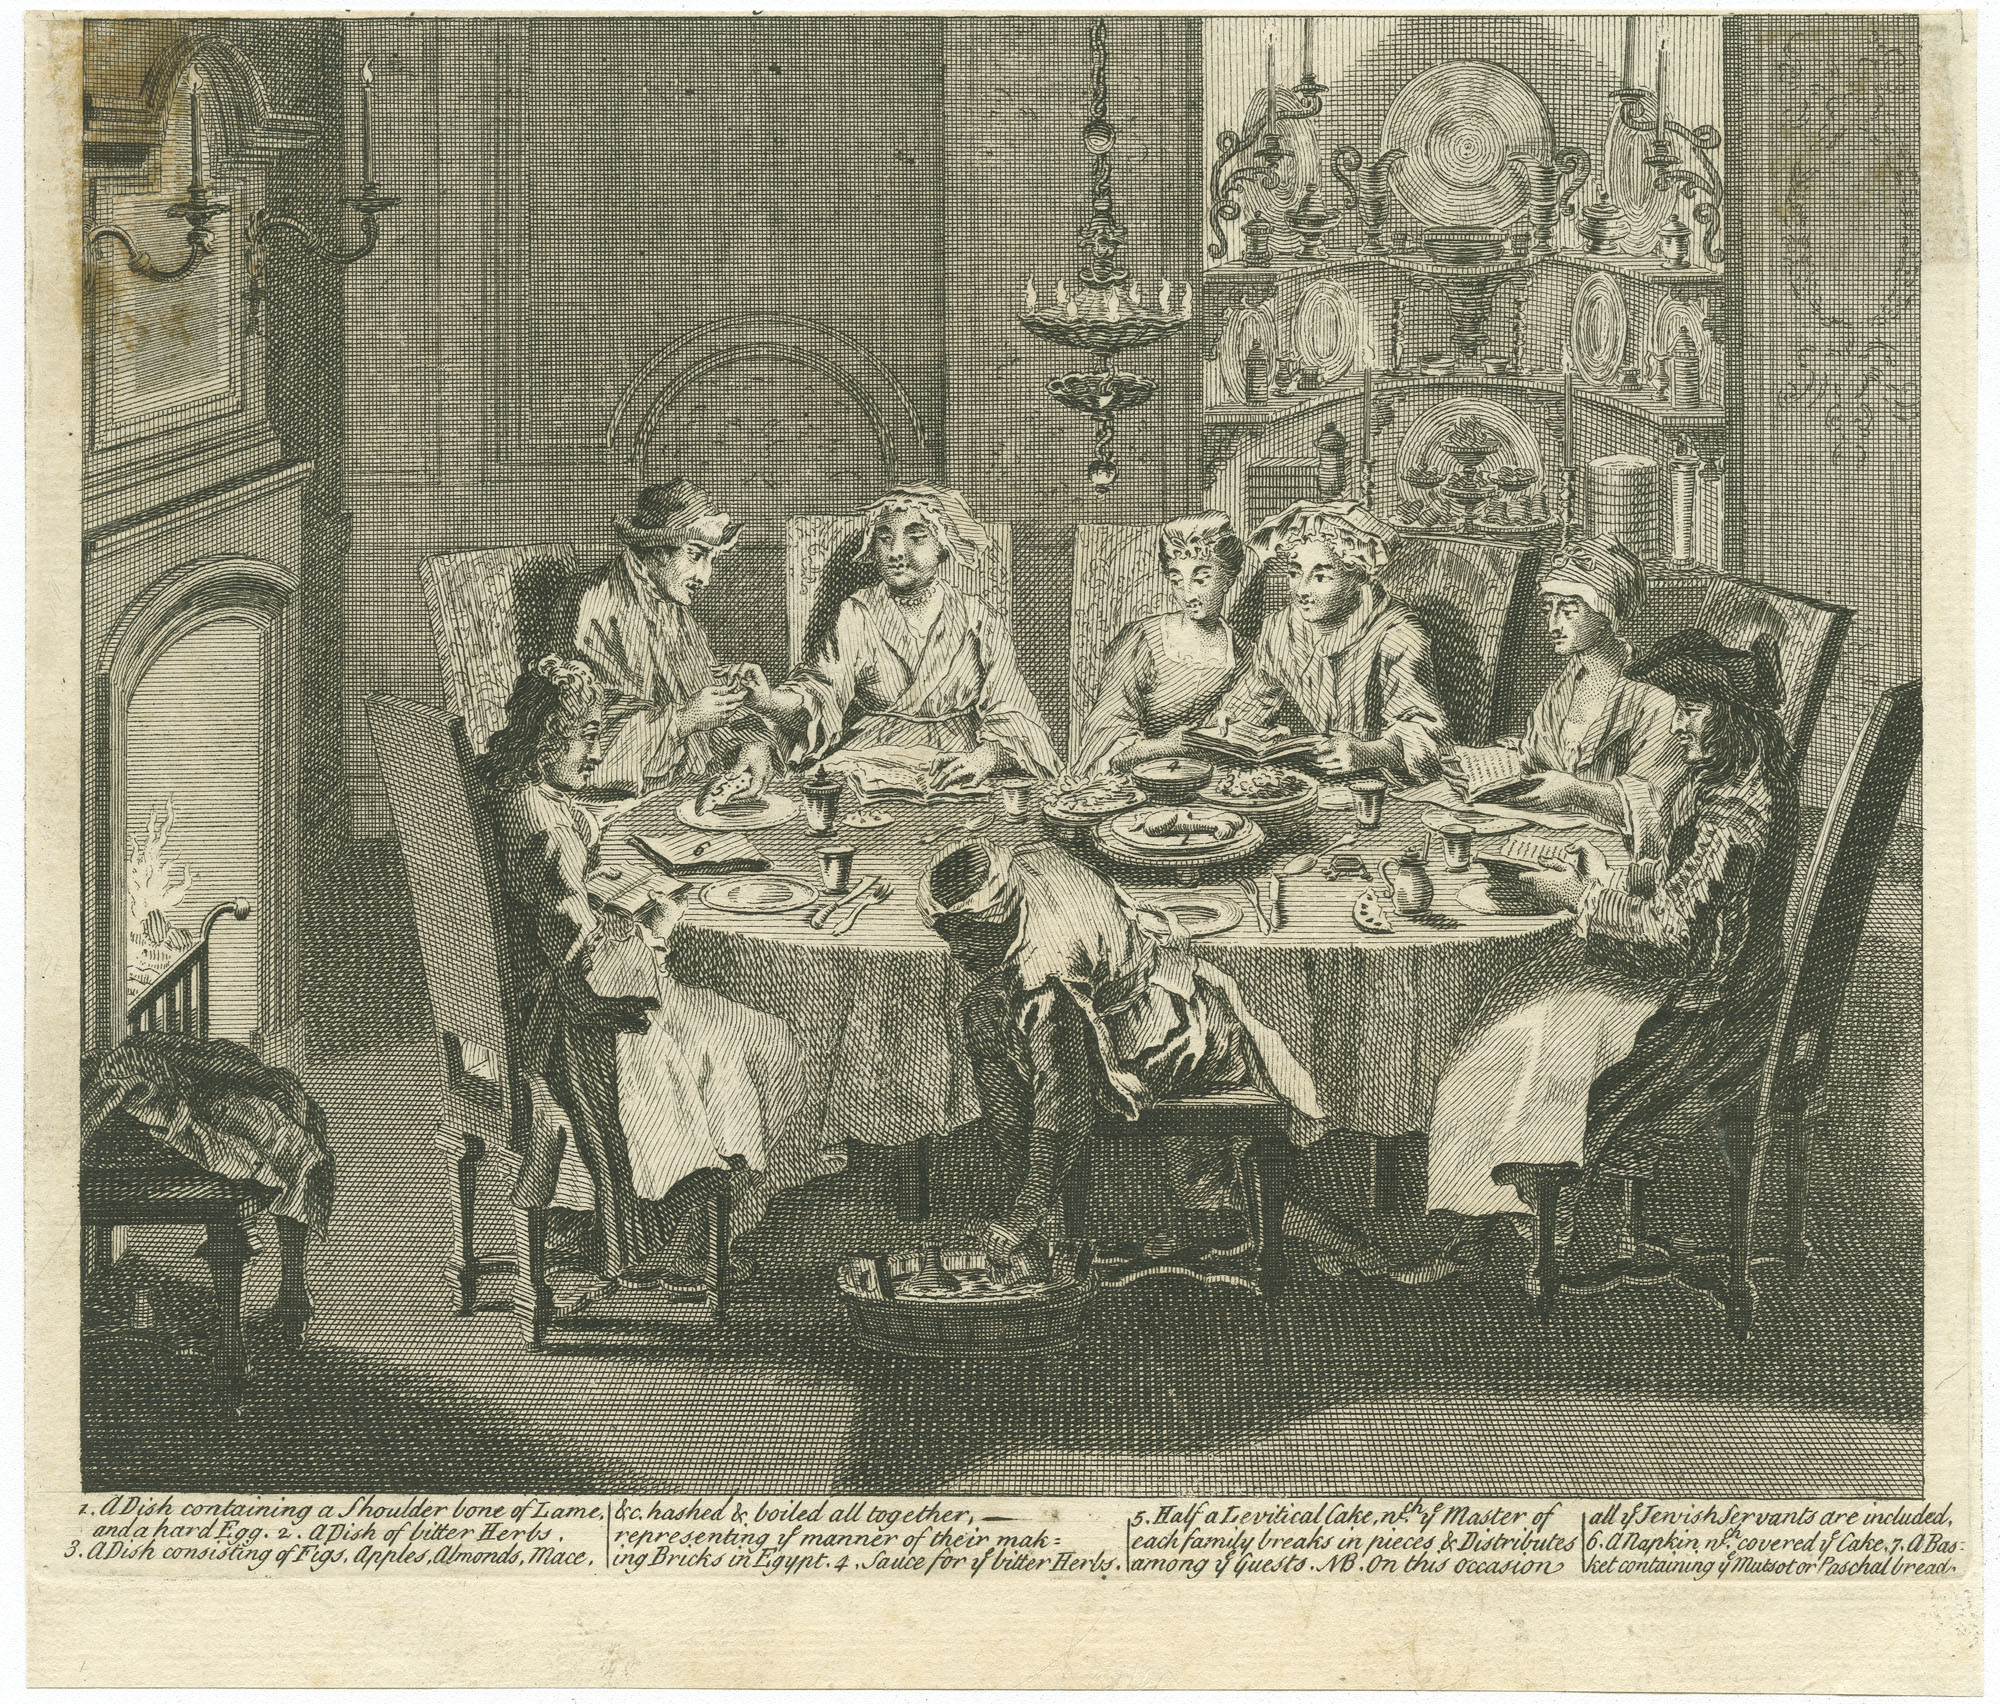 [The Passover of the Portuguese Jews]